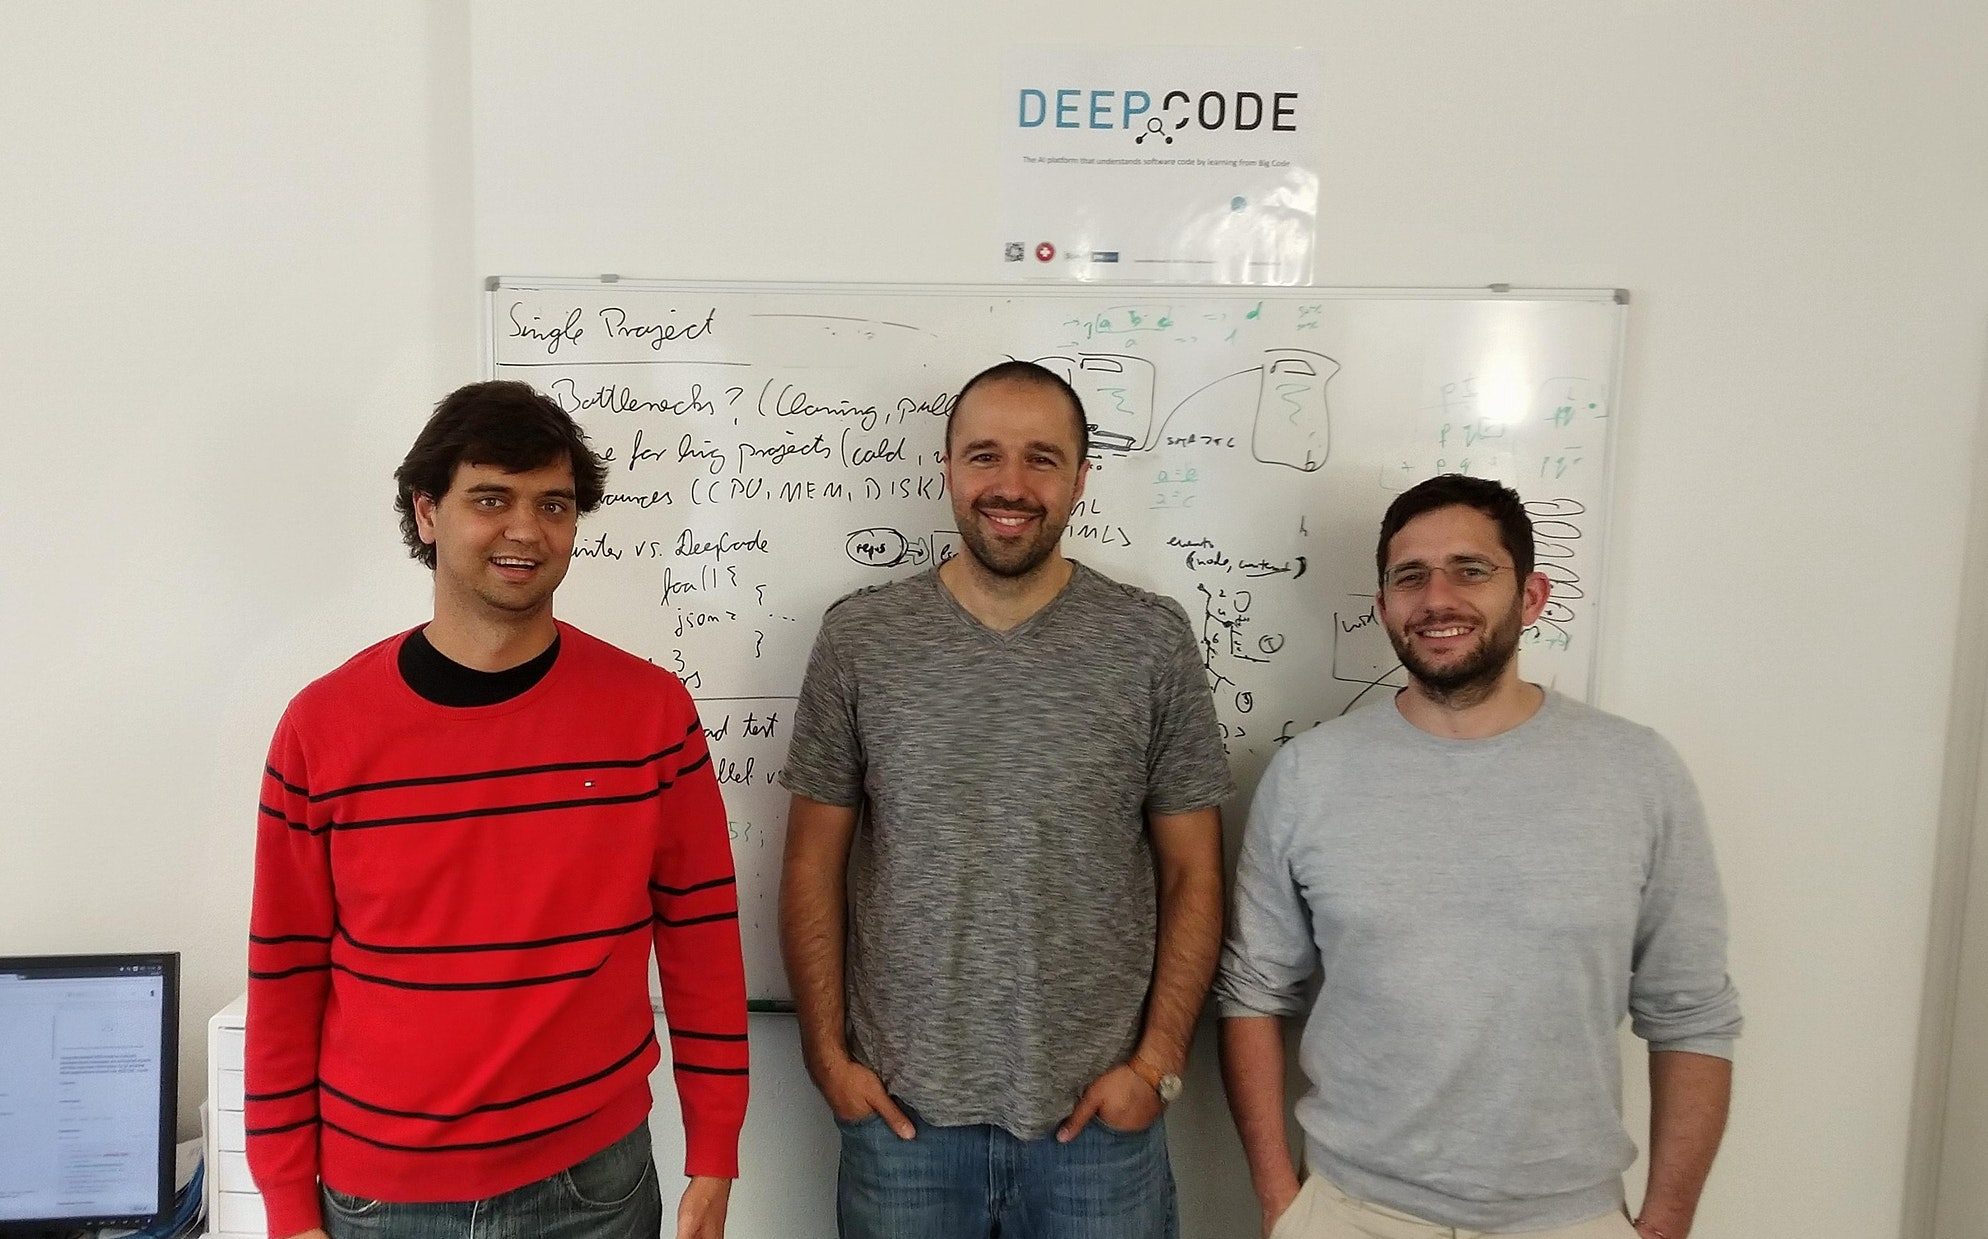 TOP 100 startup DeepCode gets acquired by Snyk